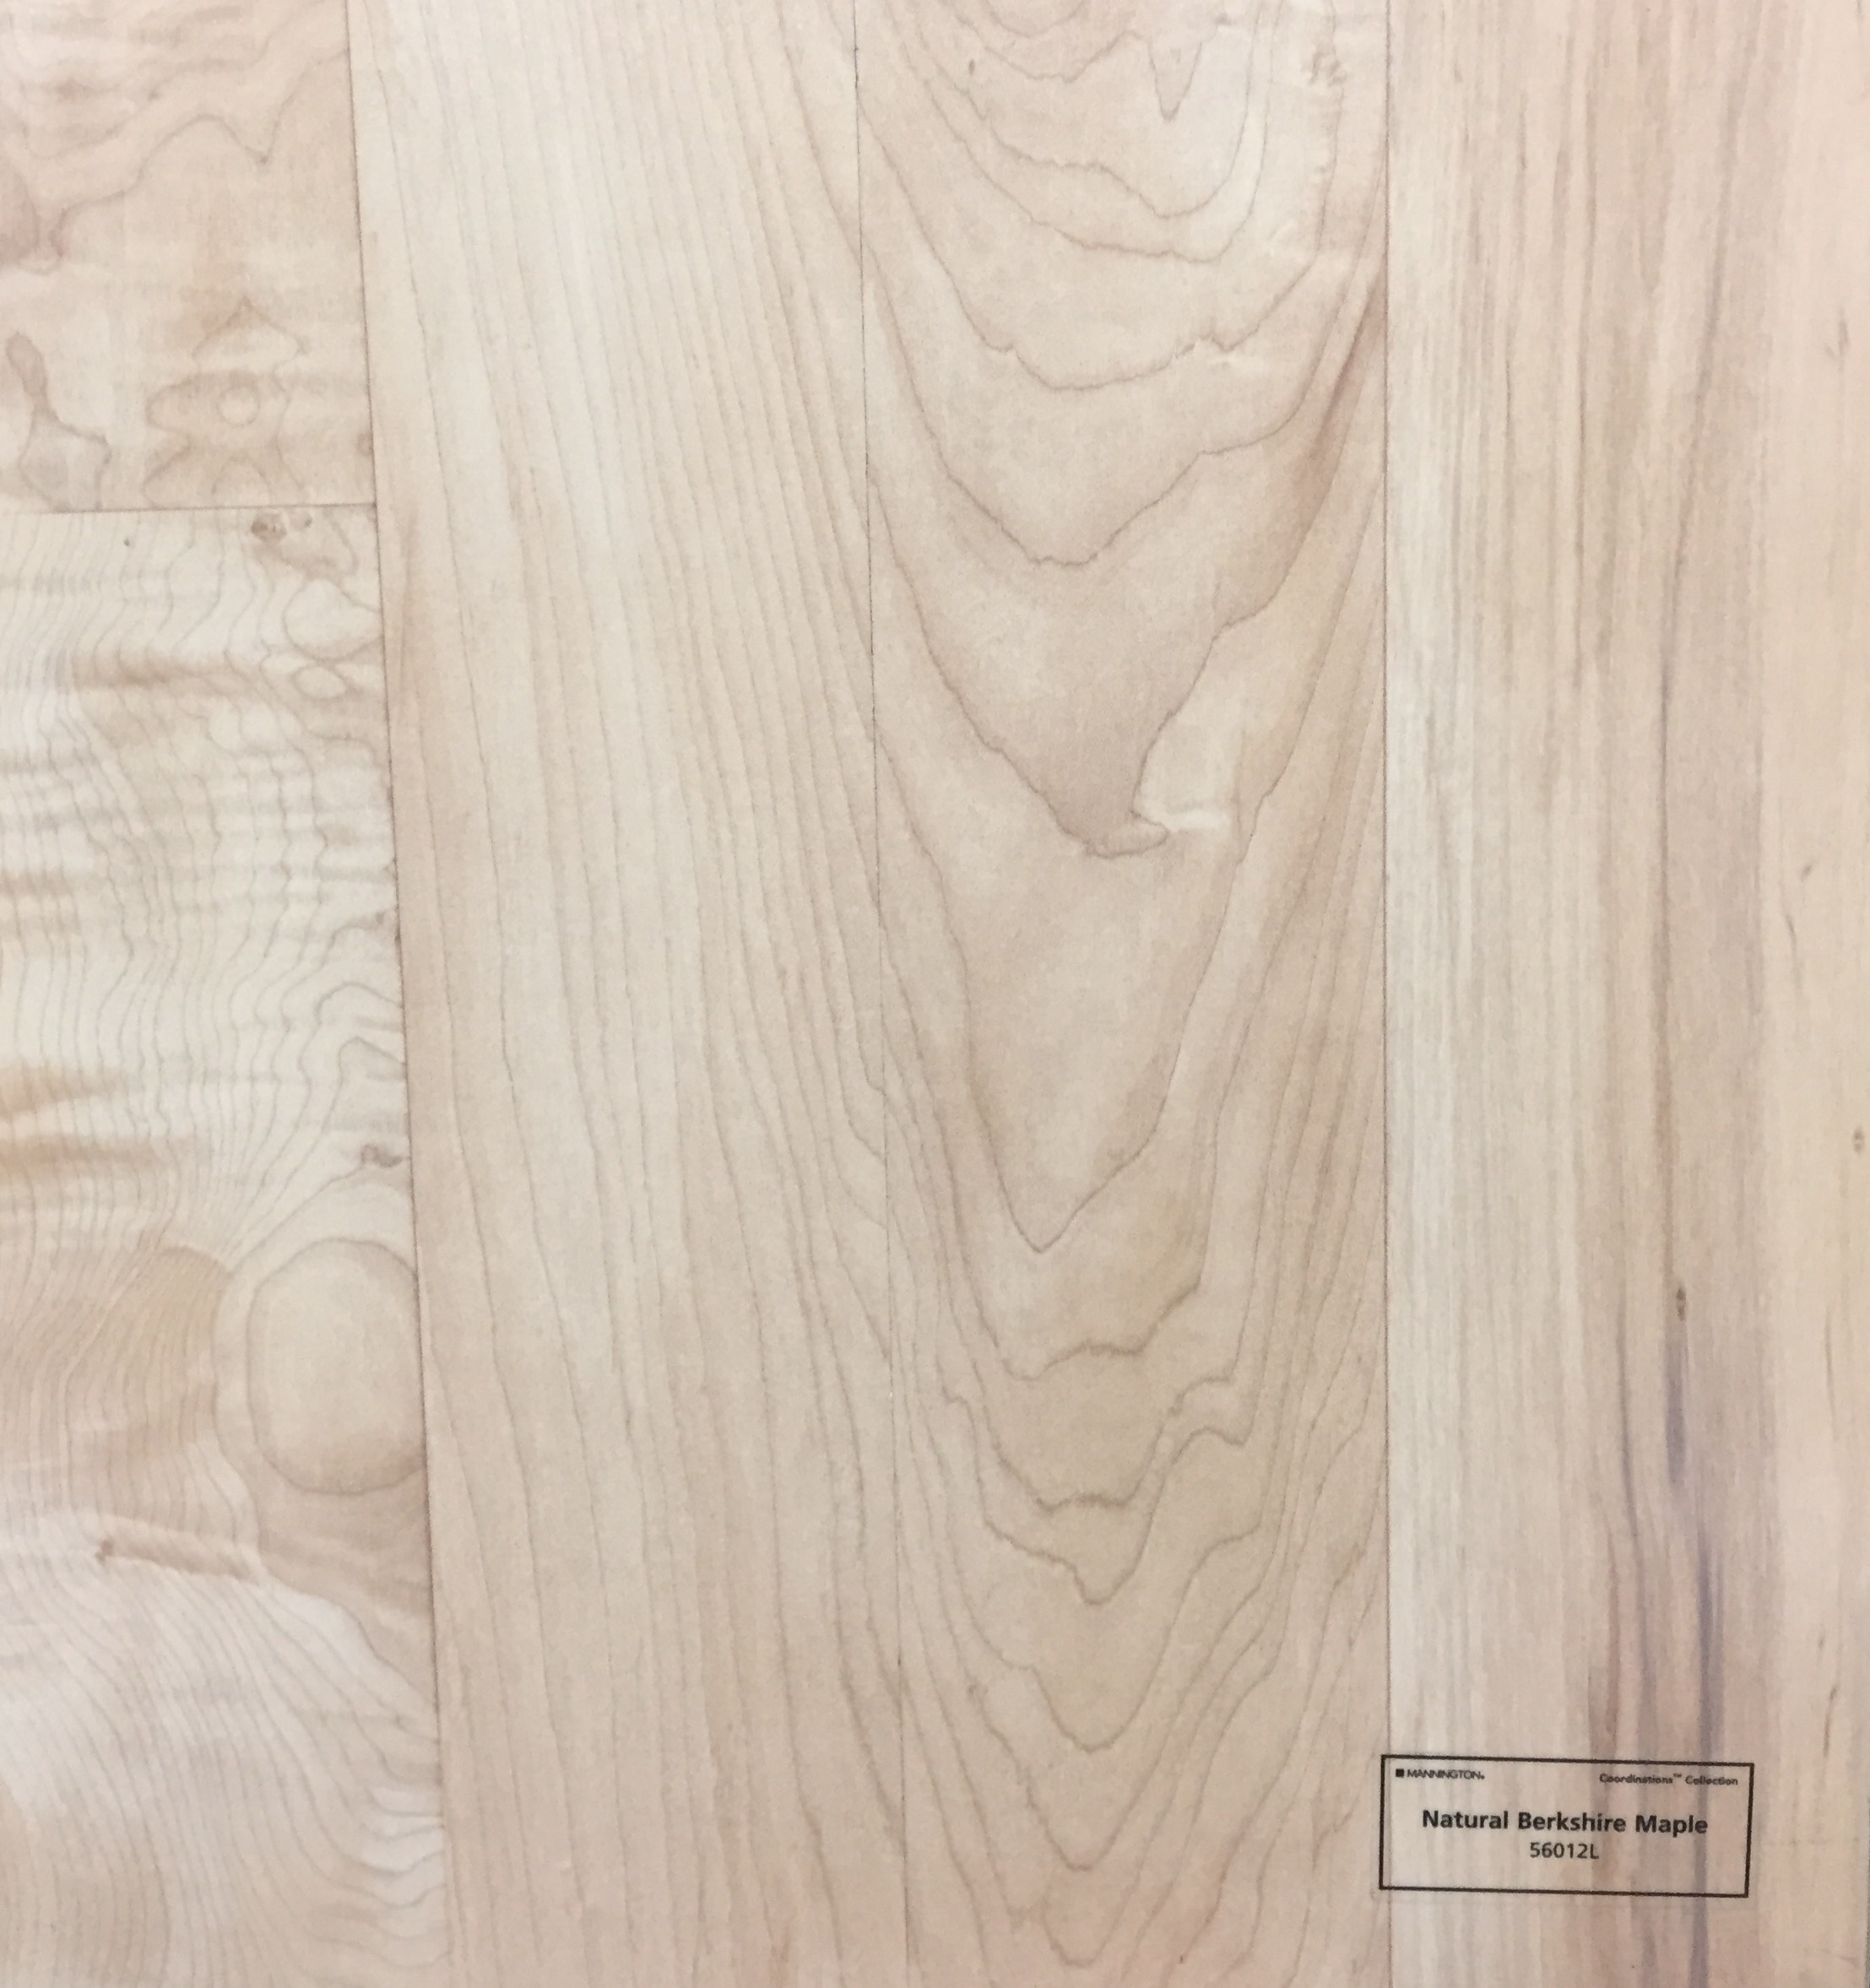 Natural Berkshire Maple - 56012L